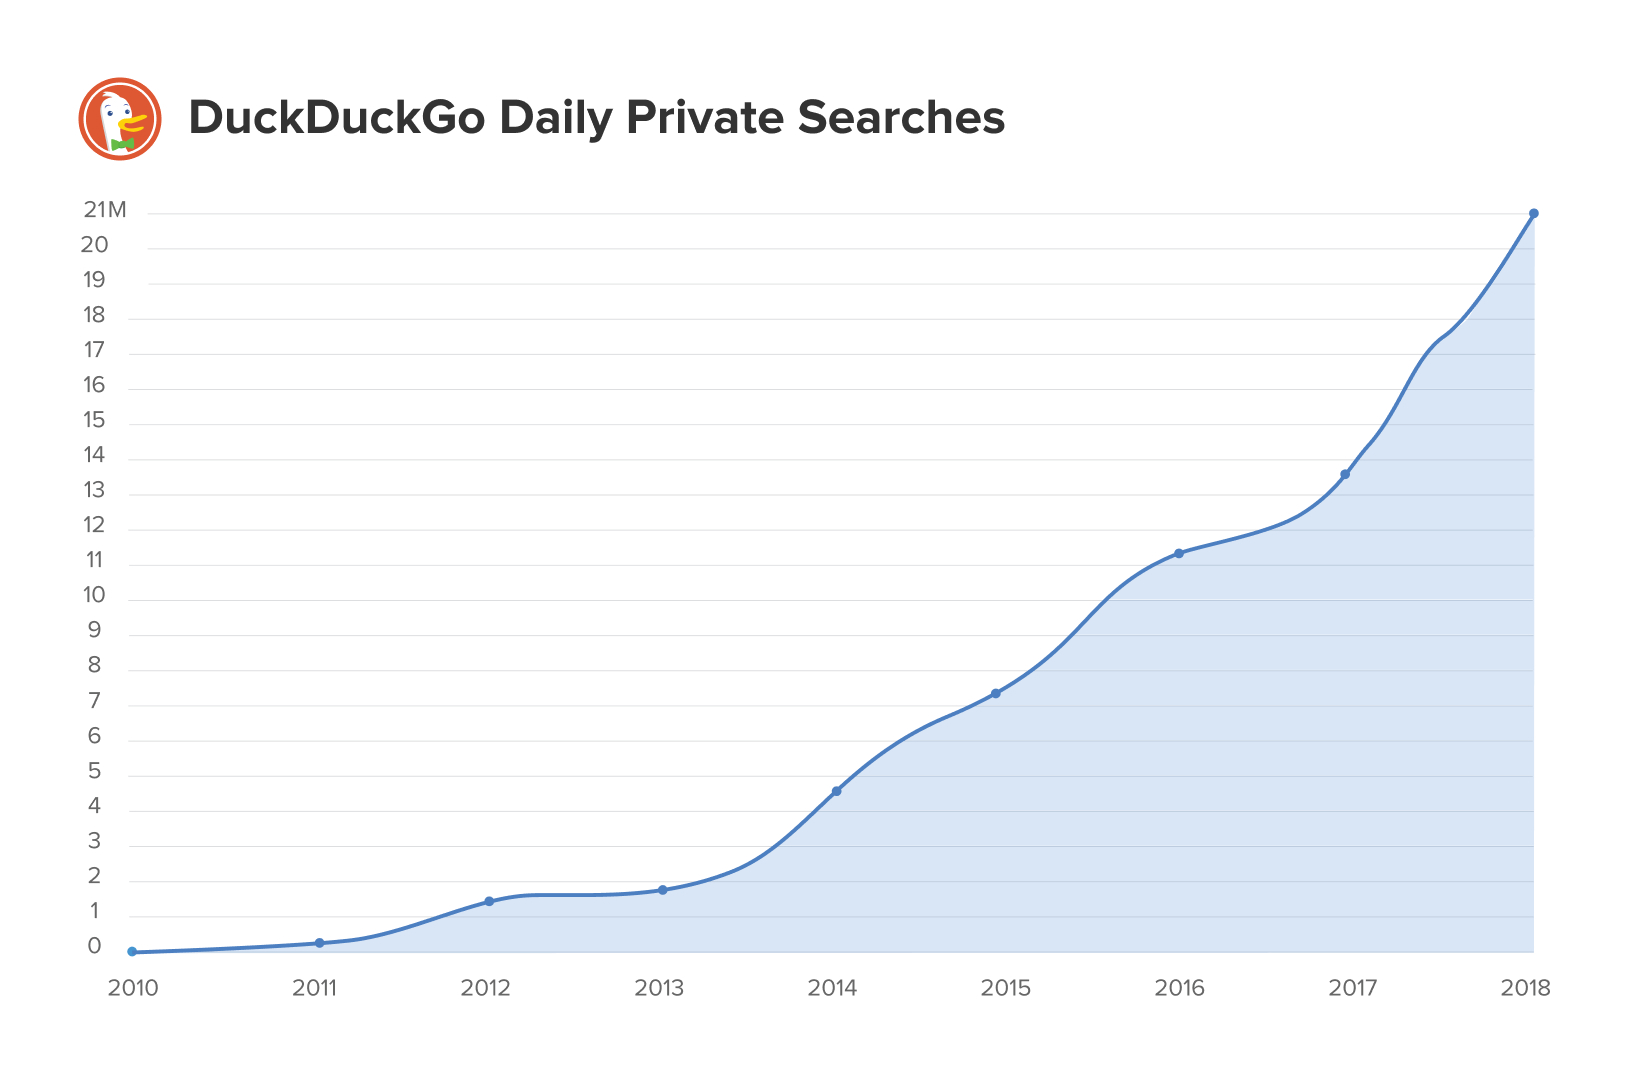 A chart showing the rapid increase of popularity of DuckDuckGo.com